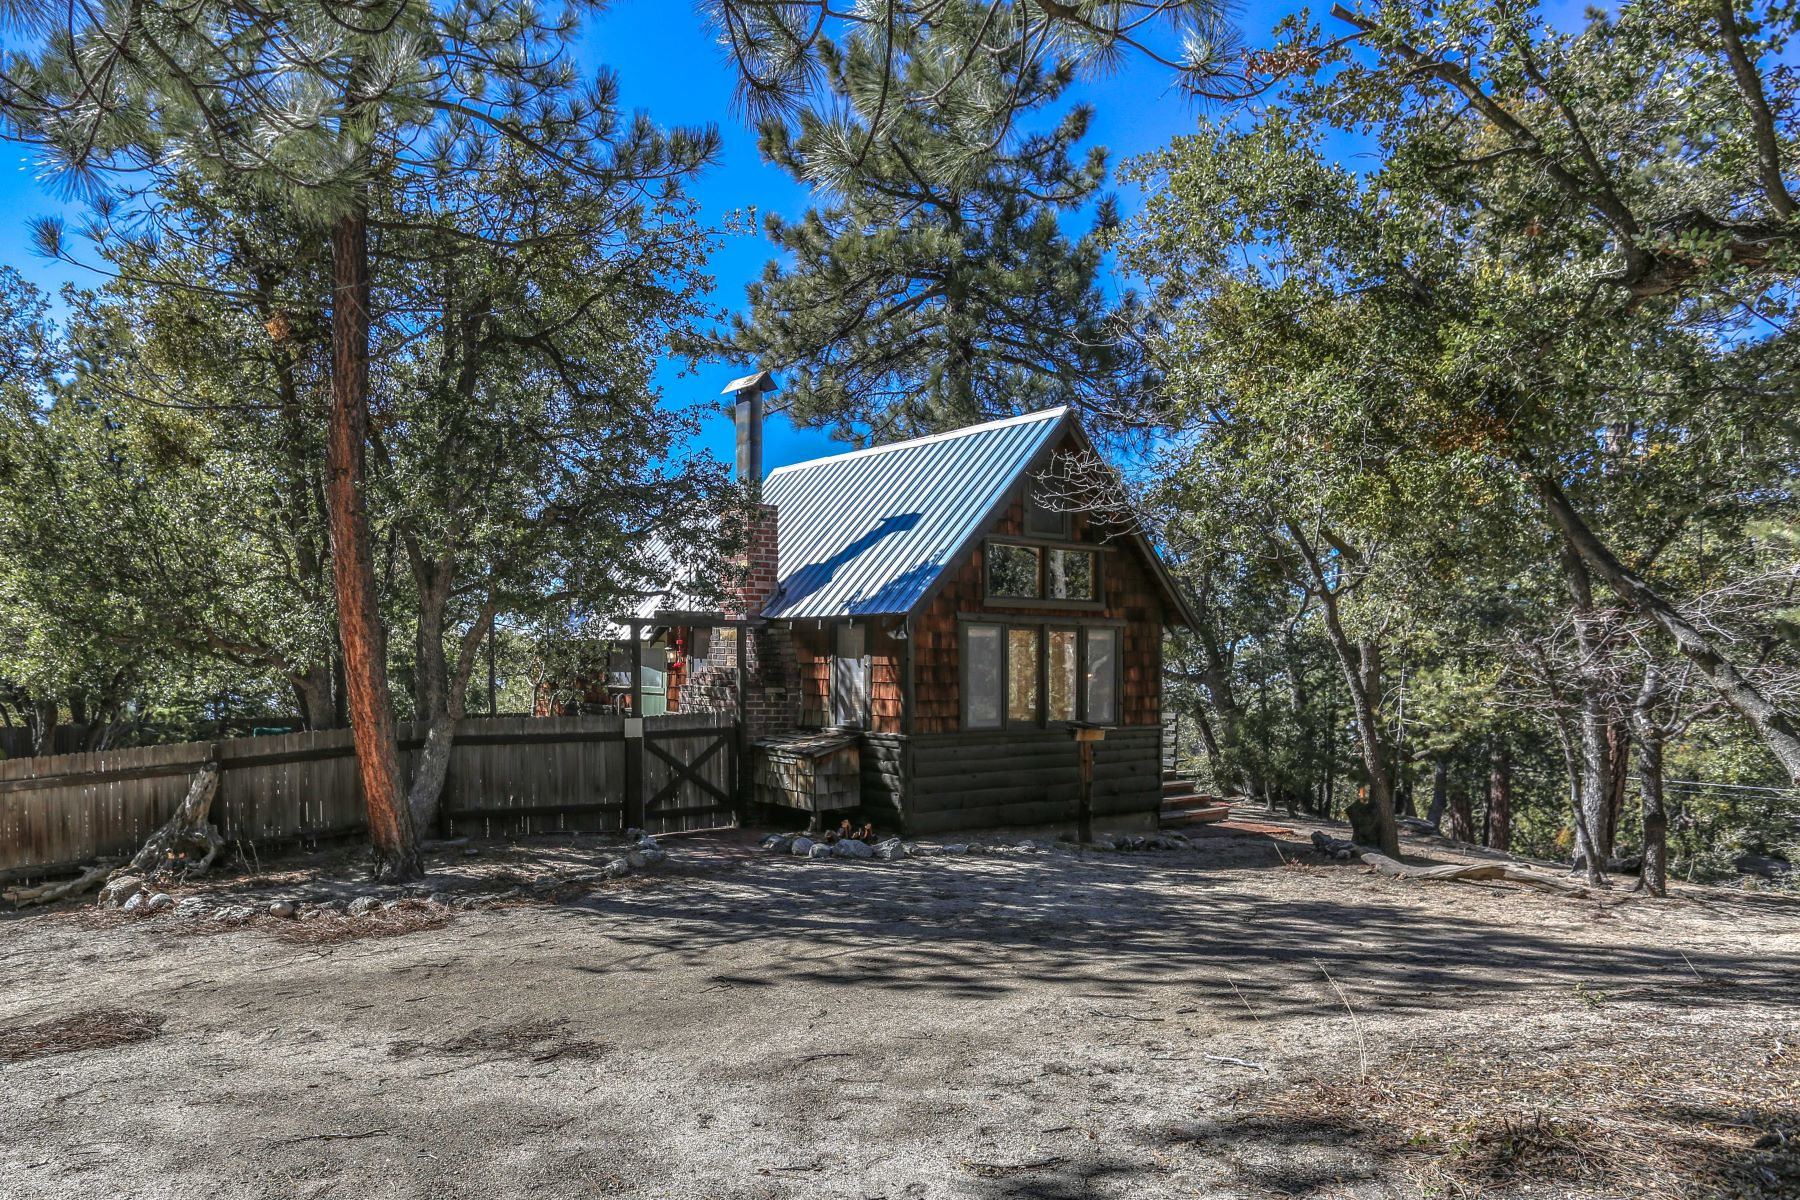 Single Family Homes for Active at 24385 Rocky Point Rd Idyllwild, California 92549 United States